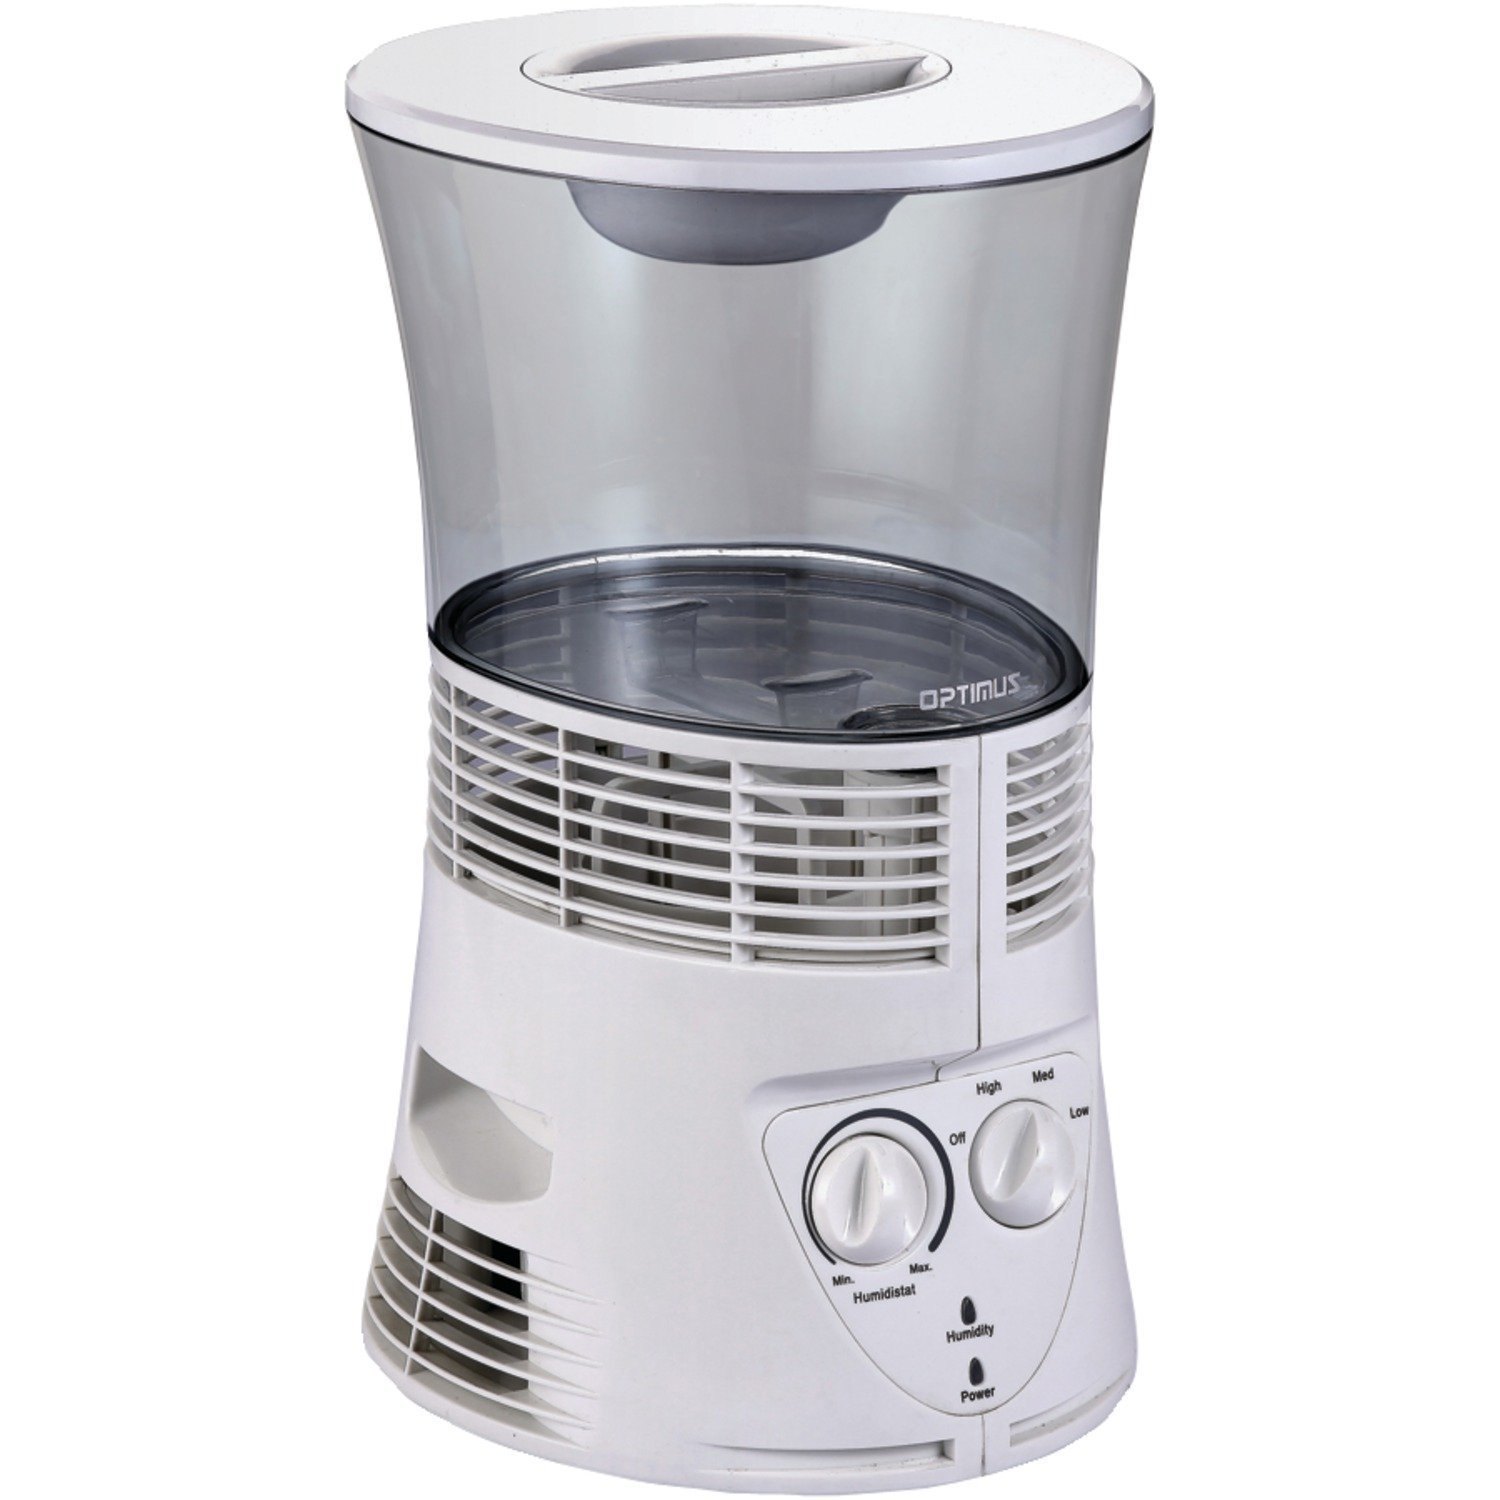 Humidifier, Optimus U-33100 Cool Mist Vaporizer Room Quiet Wick Humidifier